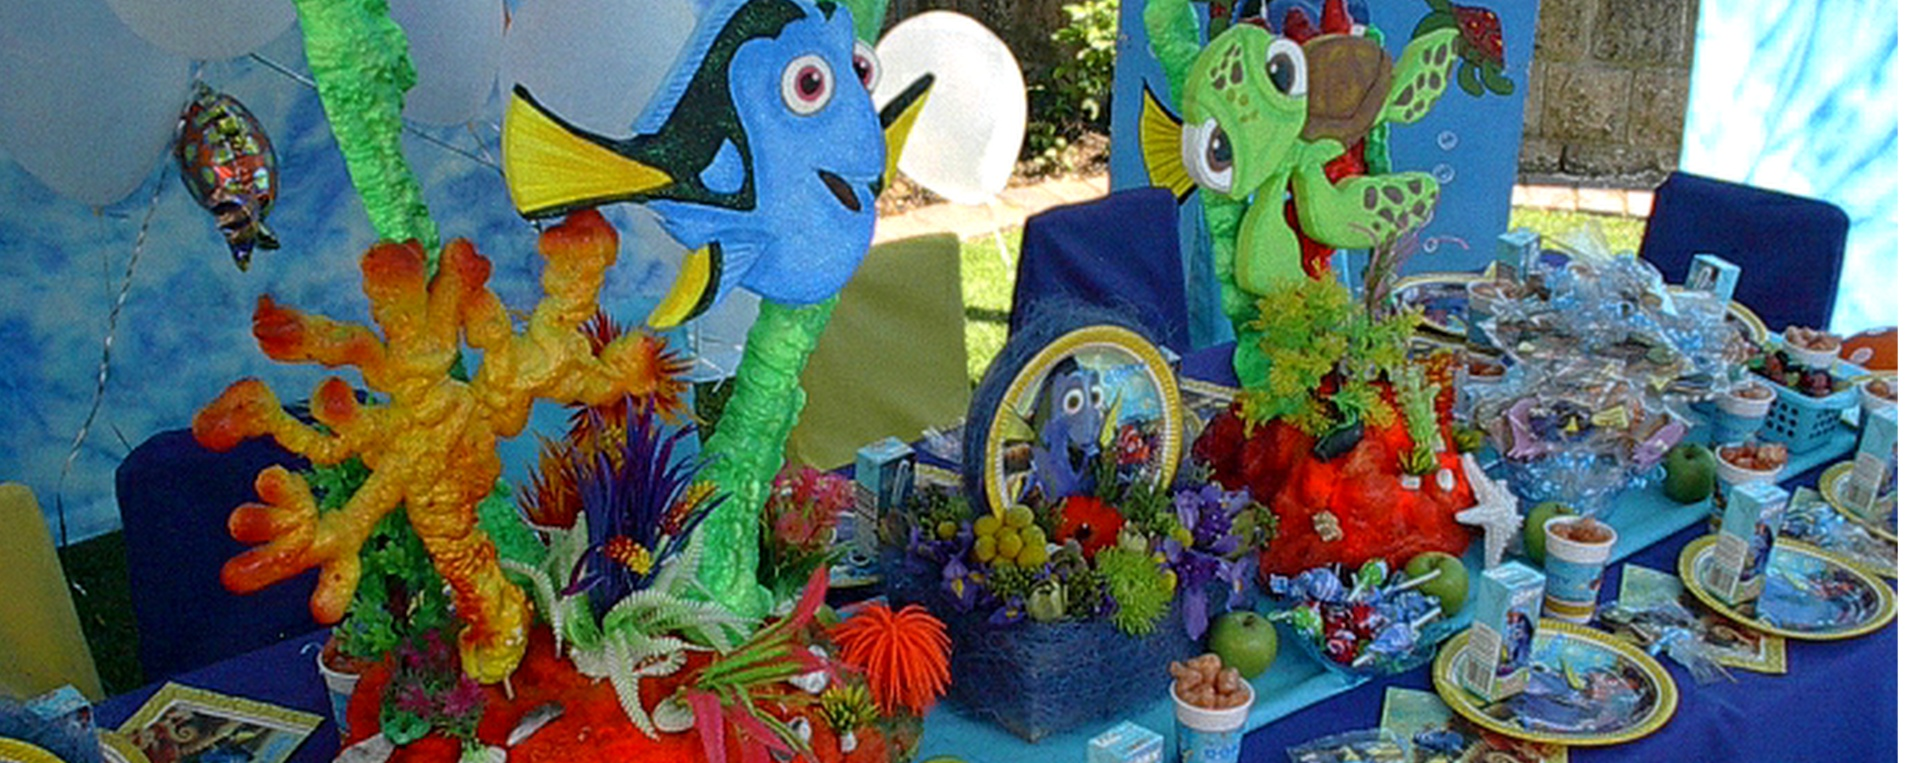 Finding Dory Kids Themed Party Decor